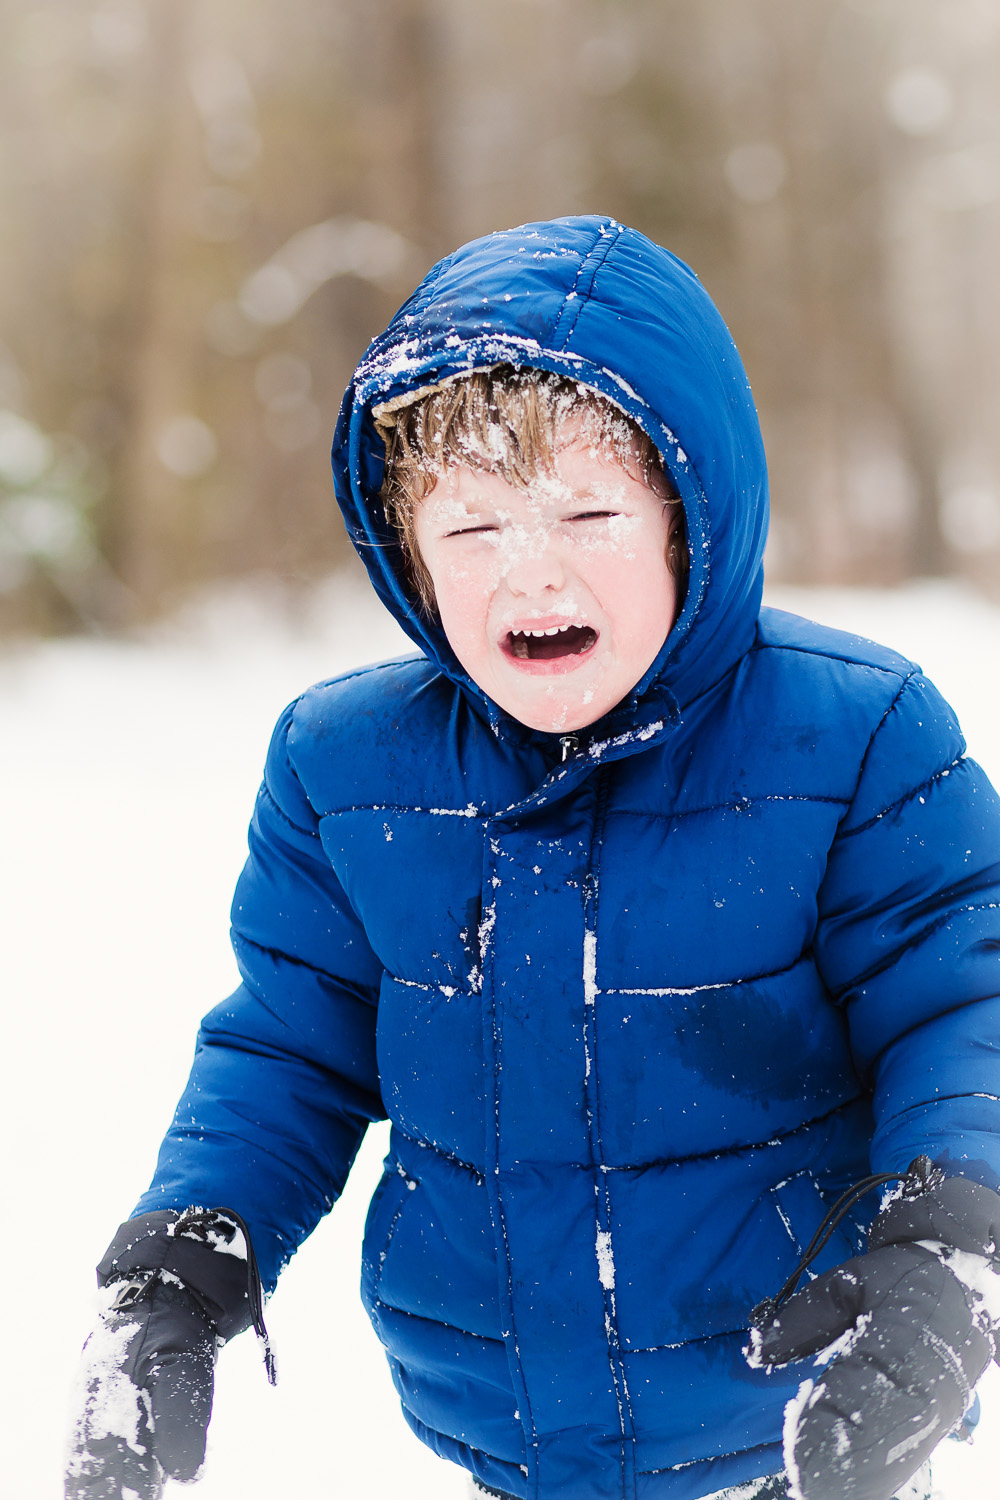 atlanta kids photographer real moments boy crying in snow